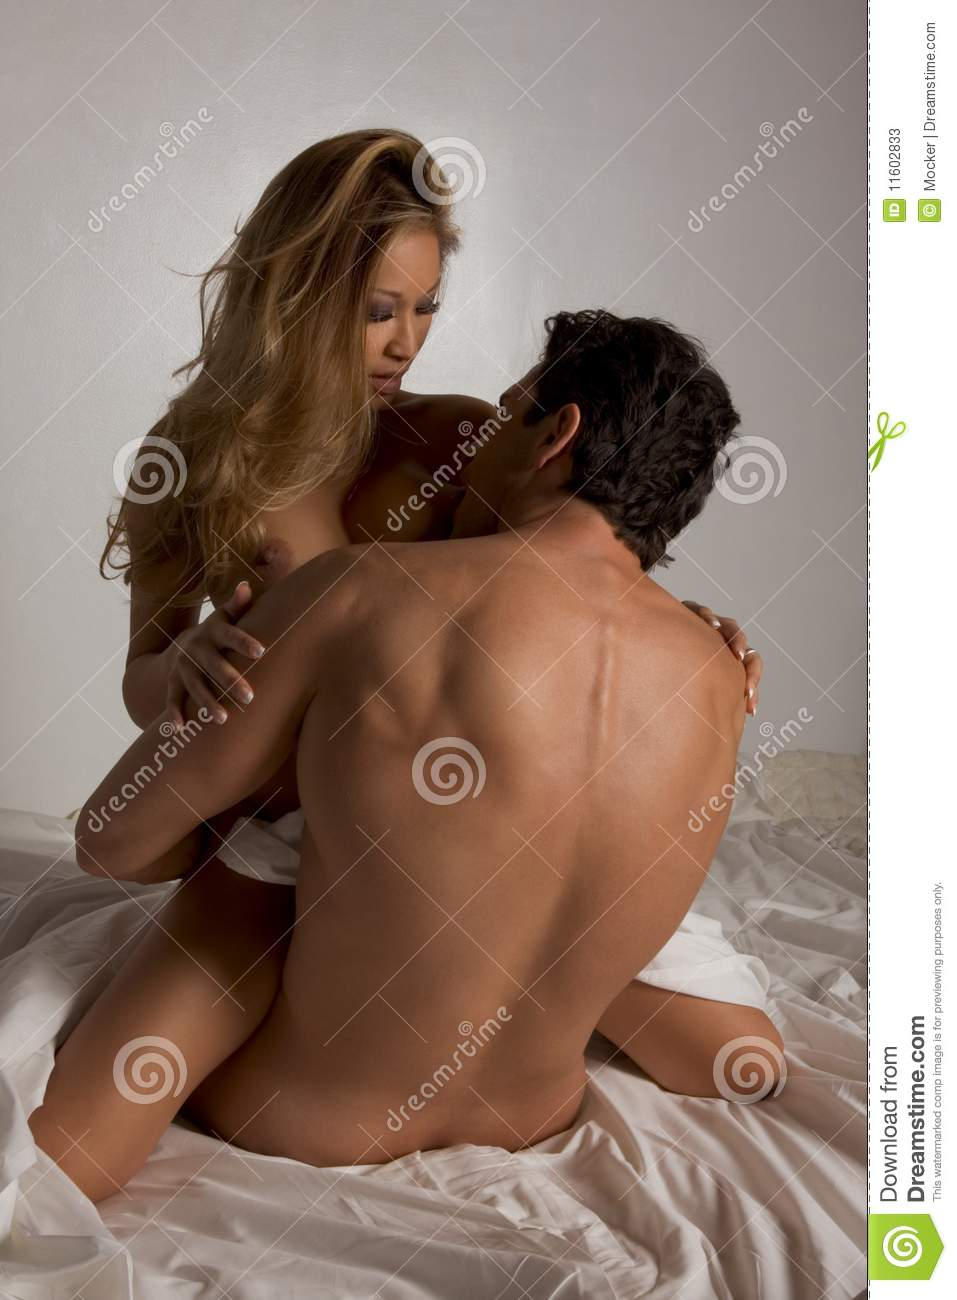 man and woman having sex pics